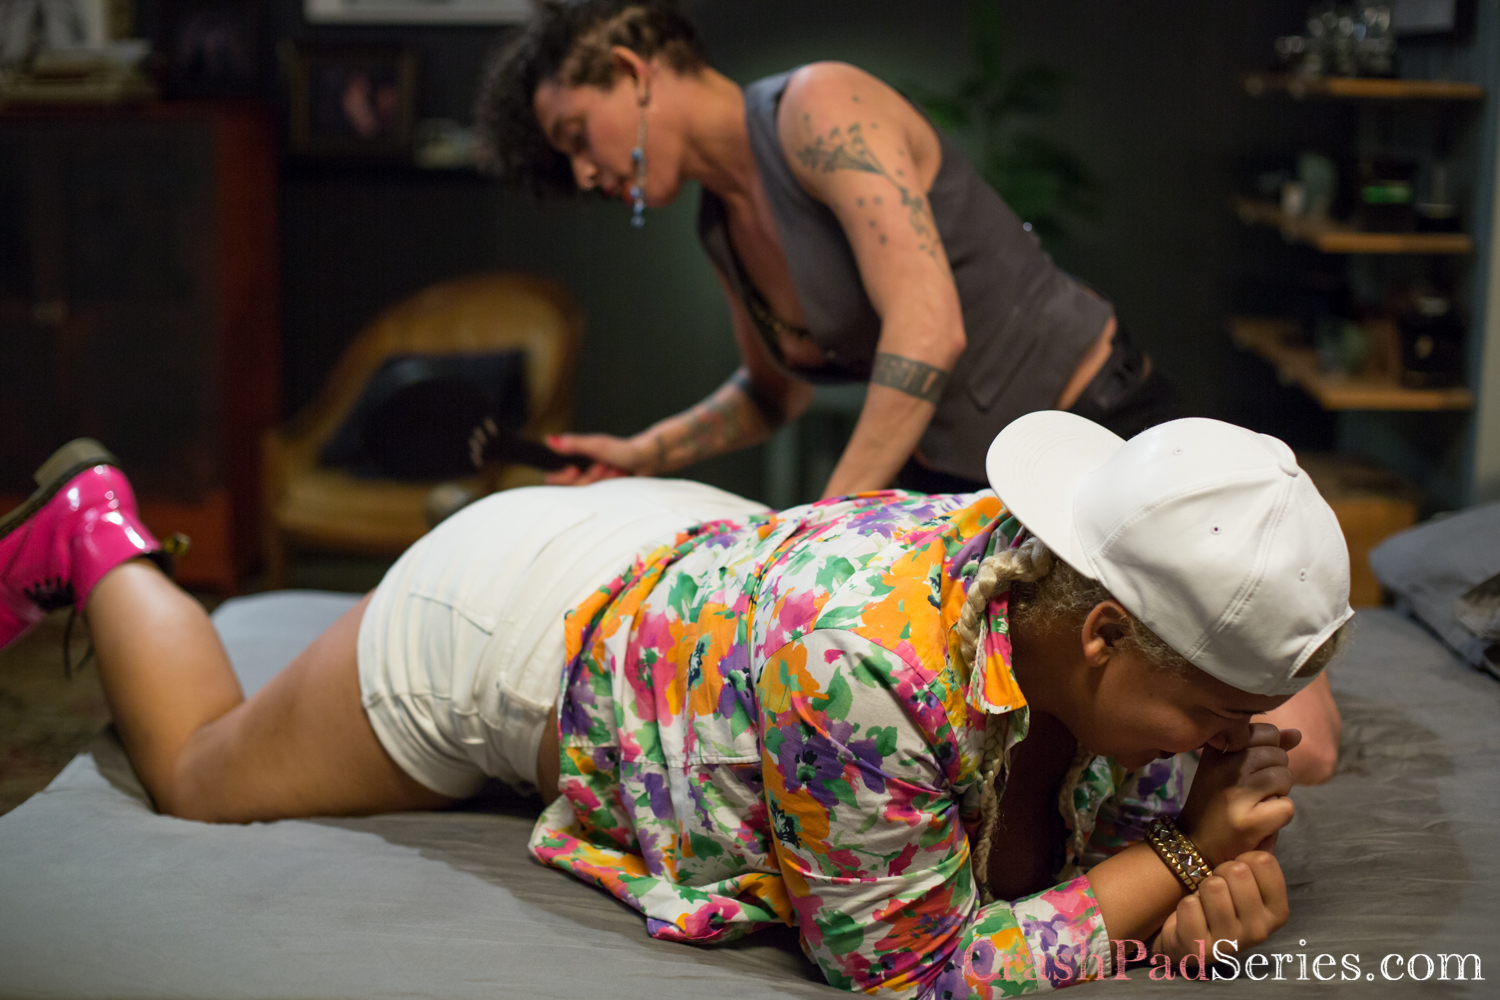 The Crash Pad Series Queer Porn Review: Episode 190 – Brooklyn Flaco and Golden Curlz